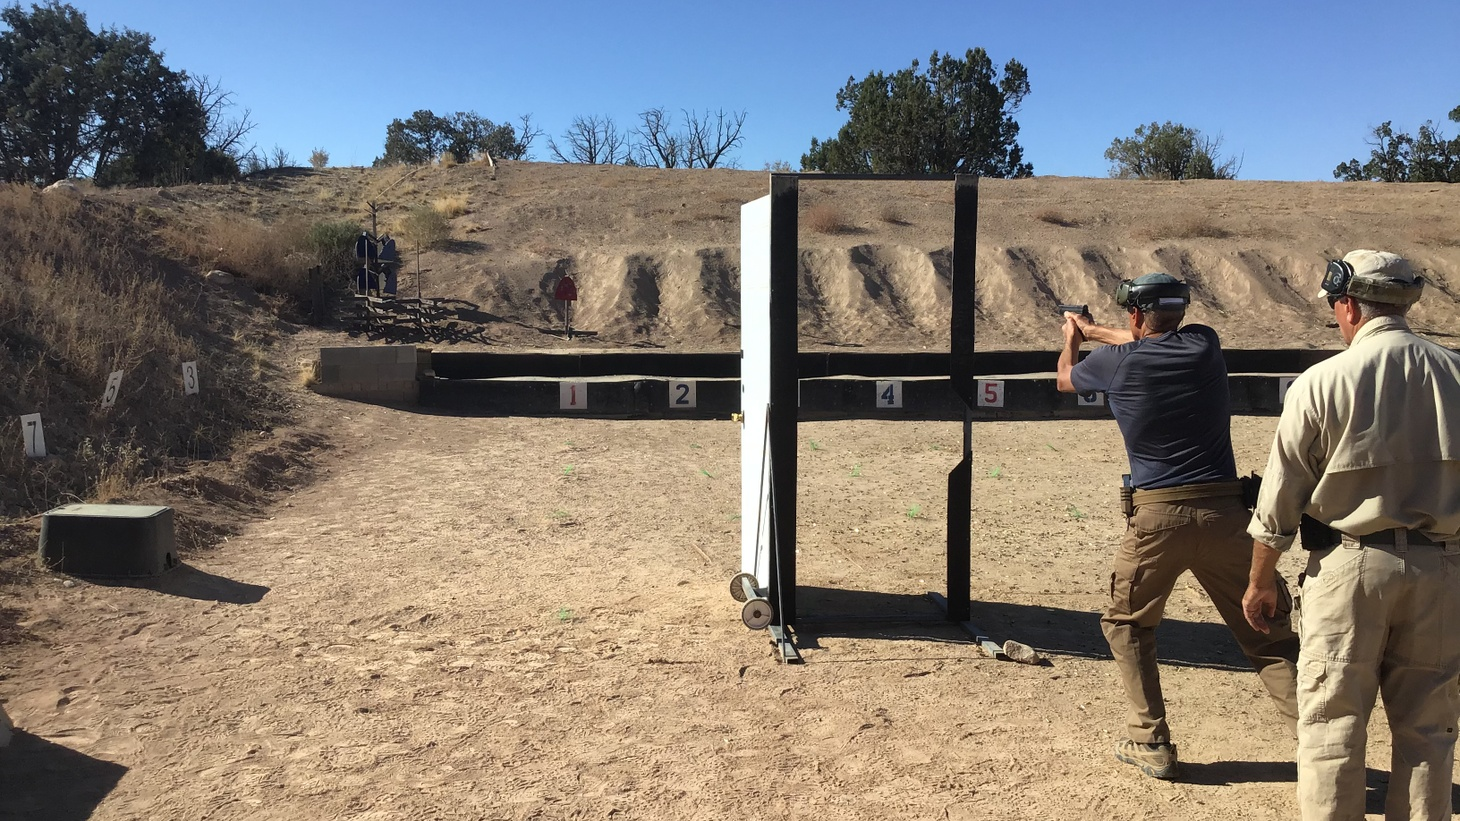 Gunsite Academy in Paulden, Ariz. is one of two civilian tactical training camps Rachel Monroe attended for her piece in WIRED.